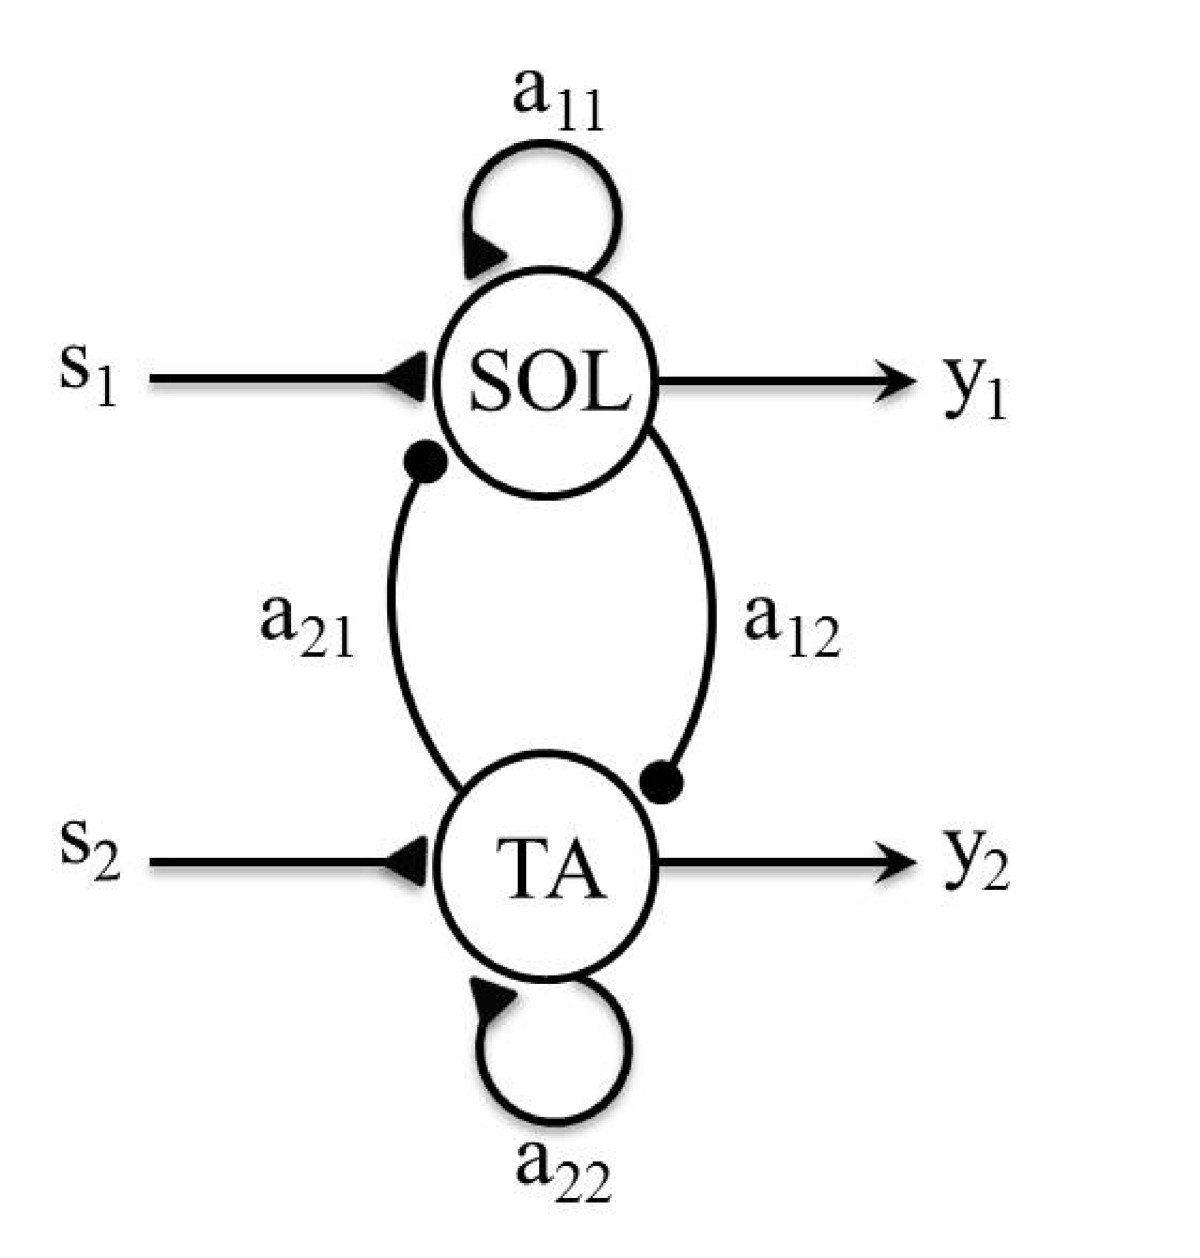 http://static-content.springer.com/image/art%3A10.1186%2F1742-4682-10-9/MediaObjects/12976_2012_Article_390_Fig1_HTML.jpg